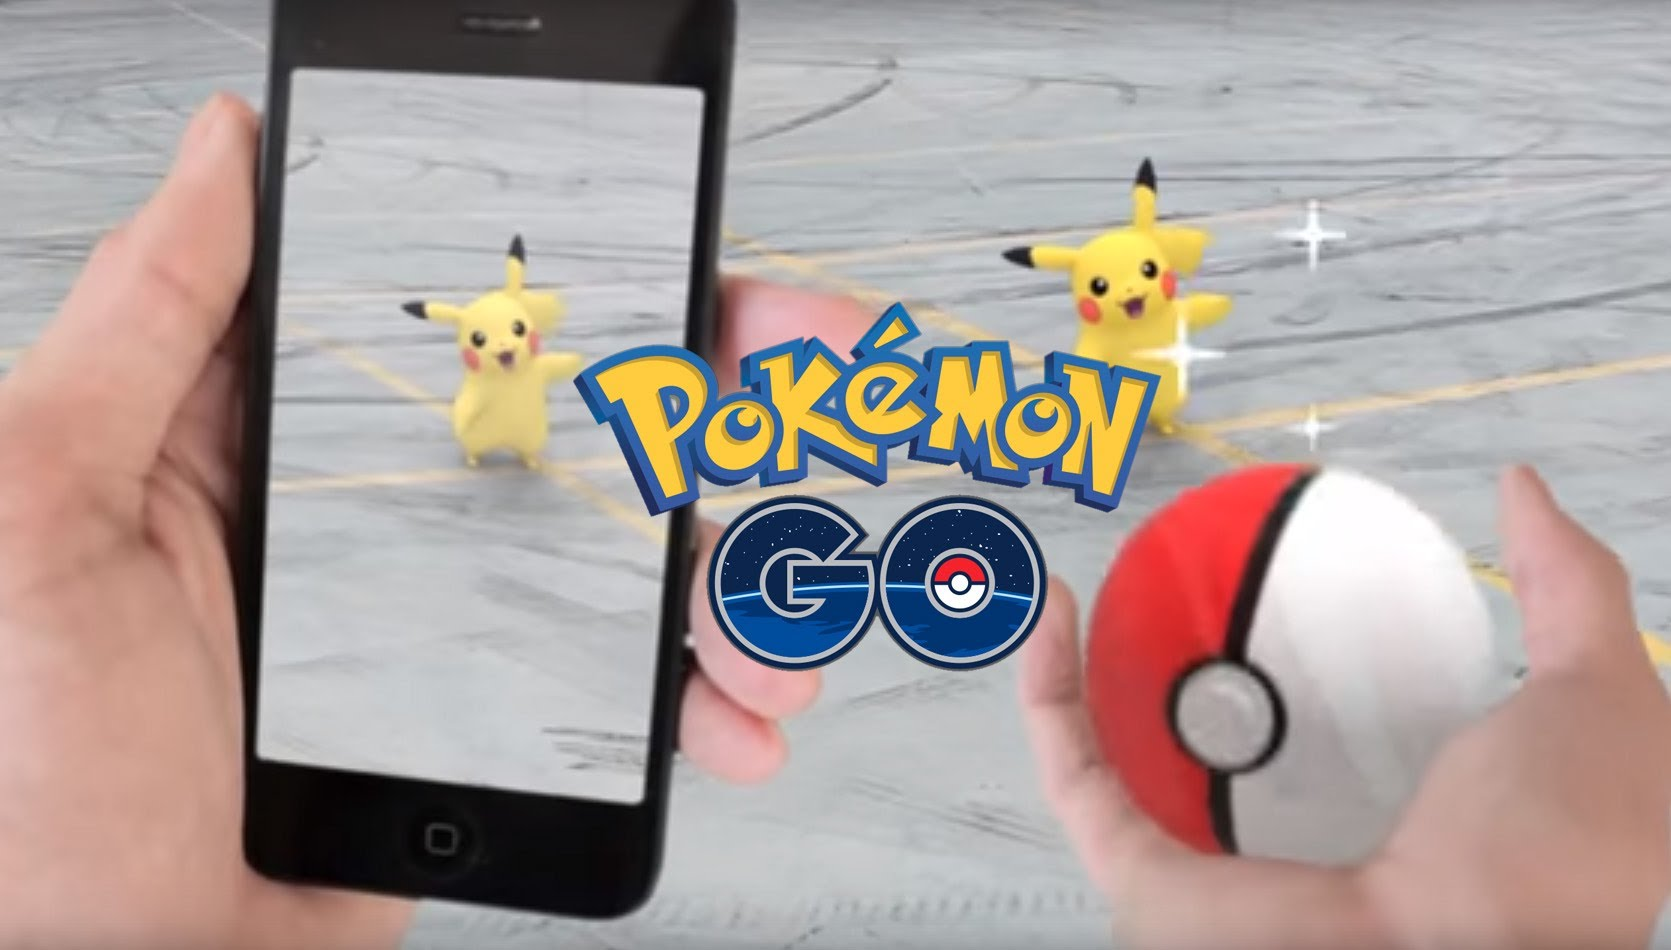 Pokemon go réalité augmentée application iOS android